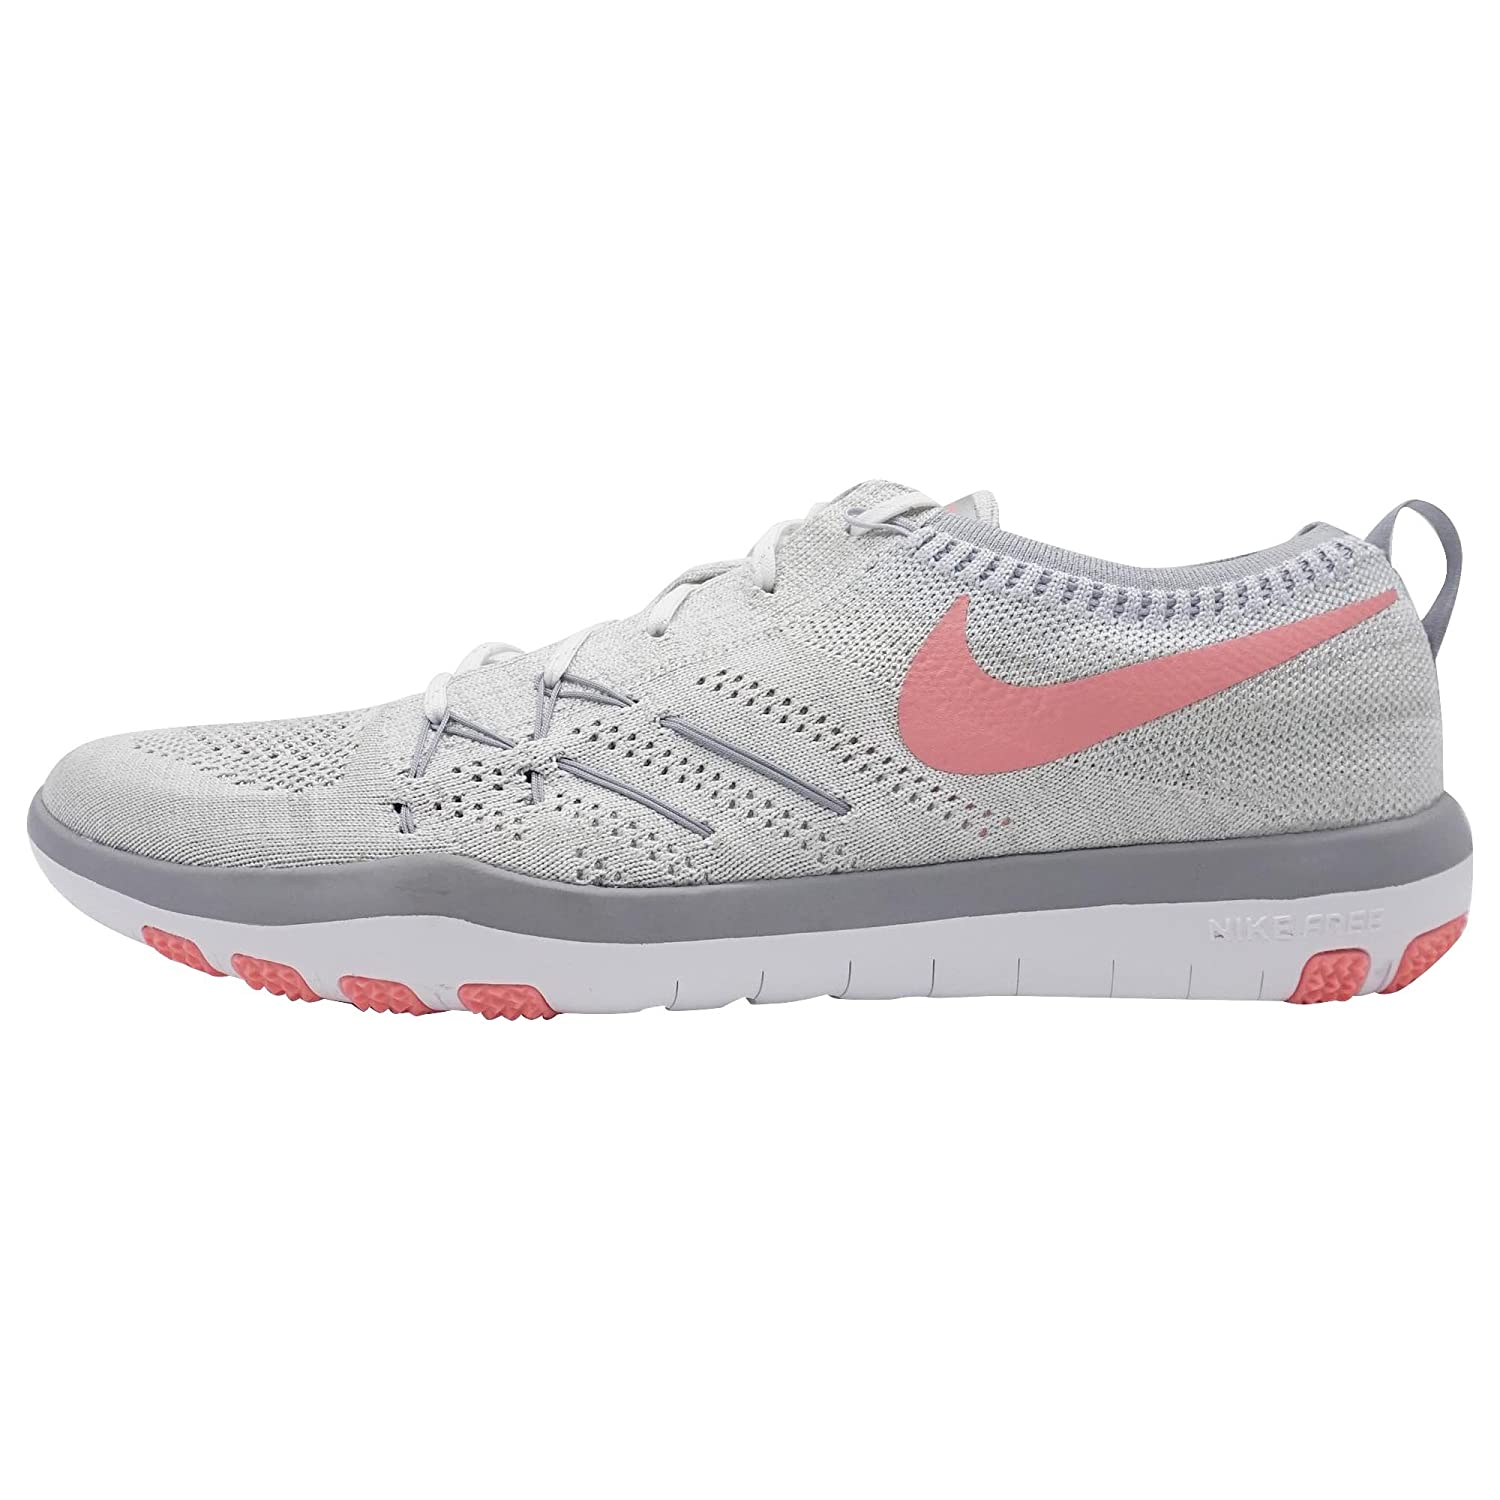 NIKE Womens Free Focus Flyknit Mesh Breathable Trainers B06VY13Y6R 6.5 B(M) US|White/Bright Melon/Wolf Grey